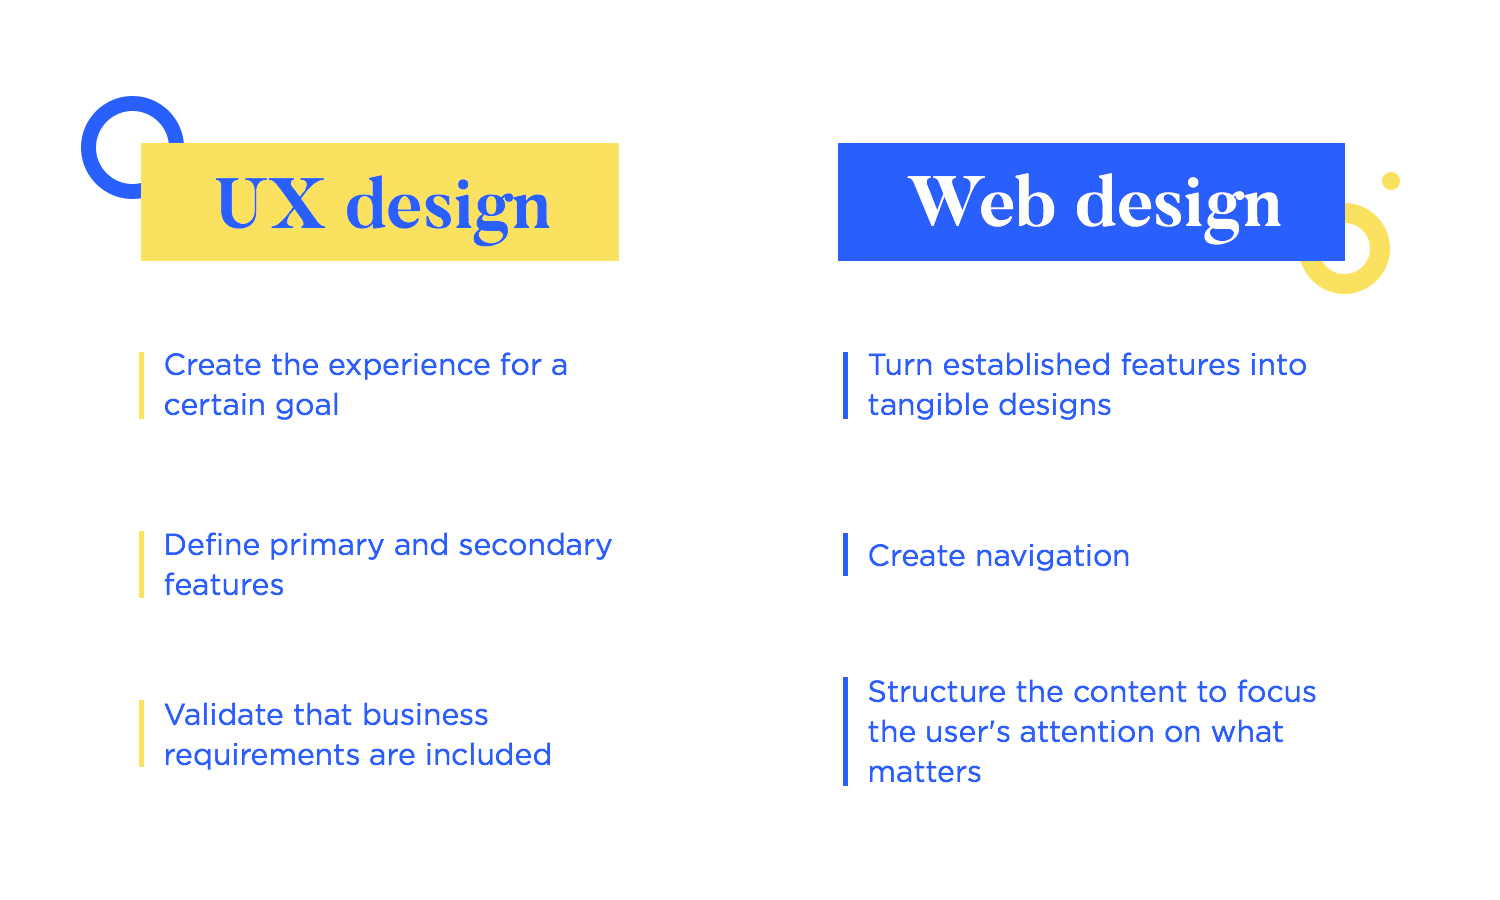 what is the difference between web design and ux design